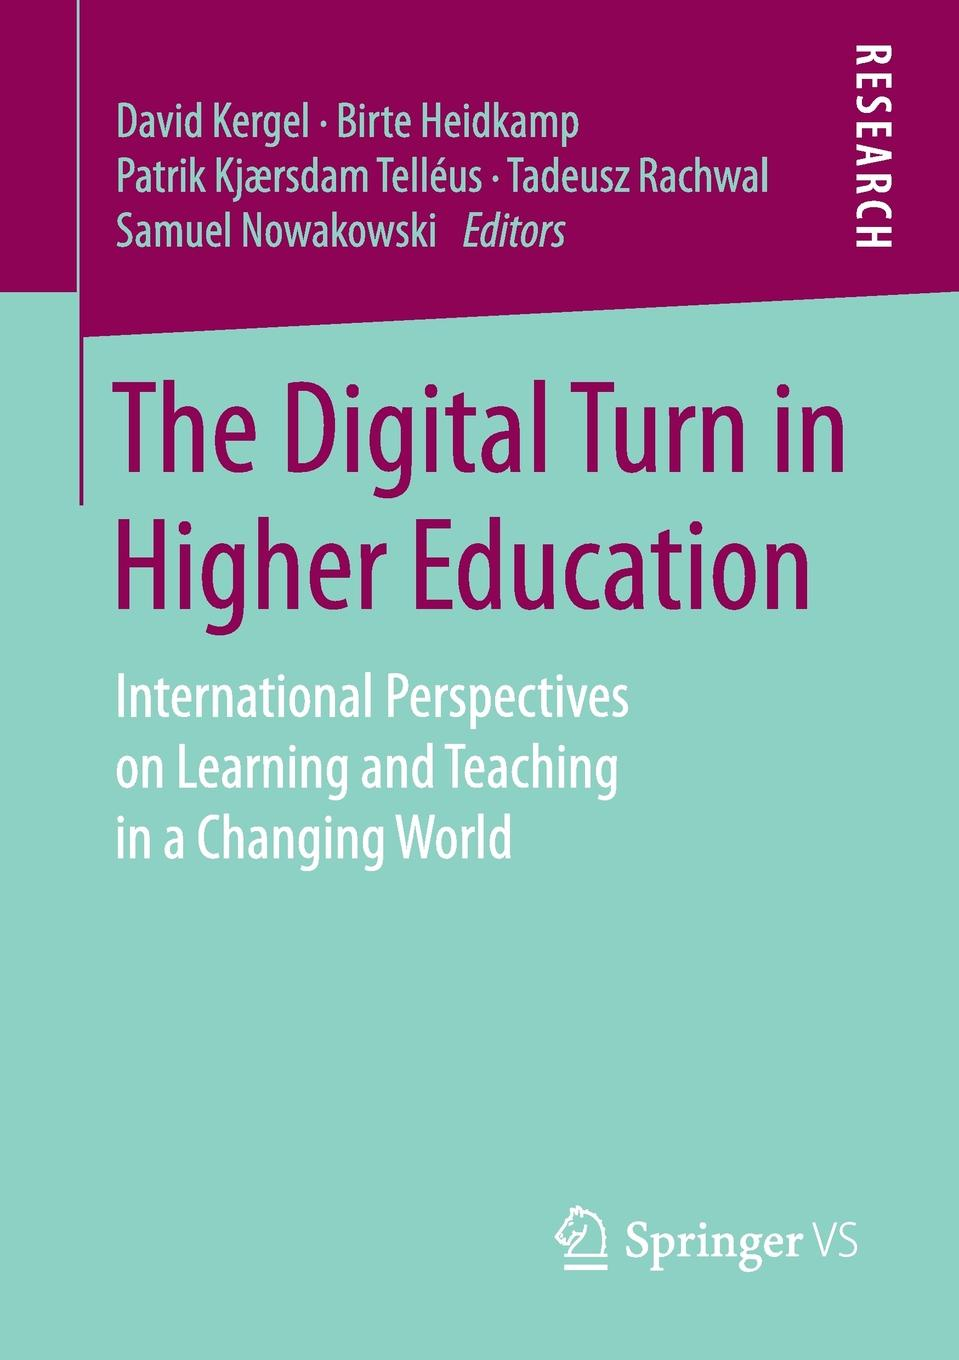 The Digital Turn in Higher Education. International Perspectives on Learning and Teaching a Changing World